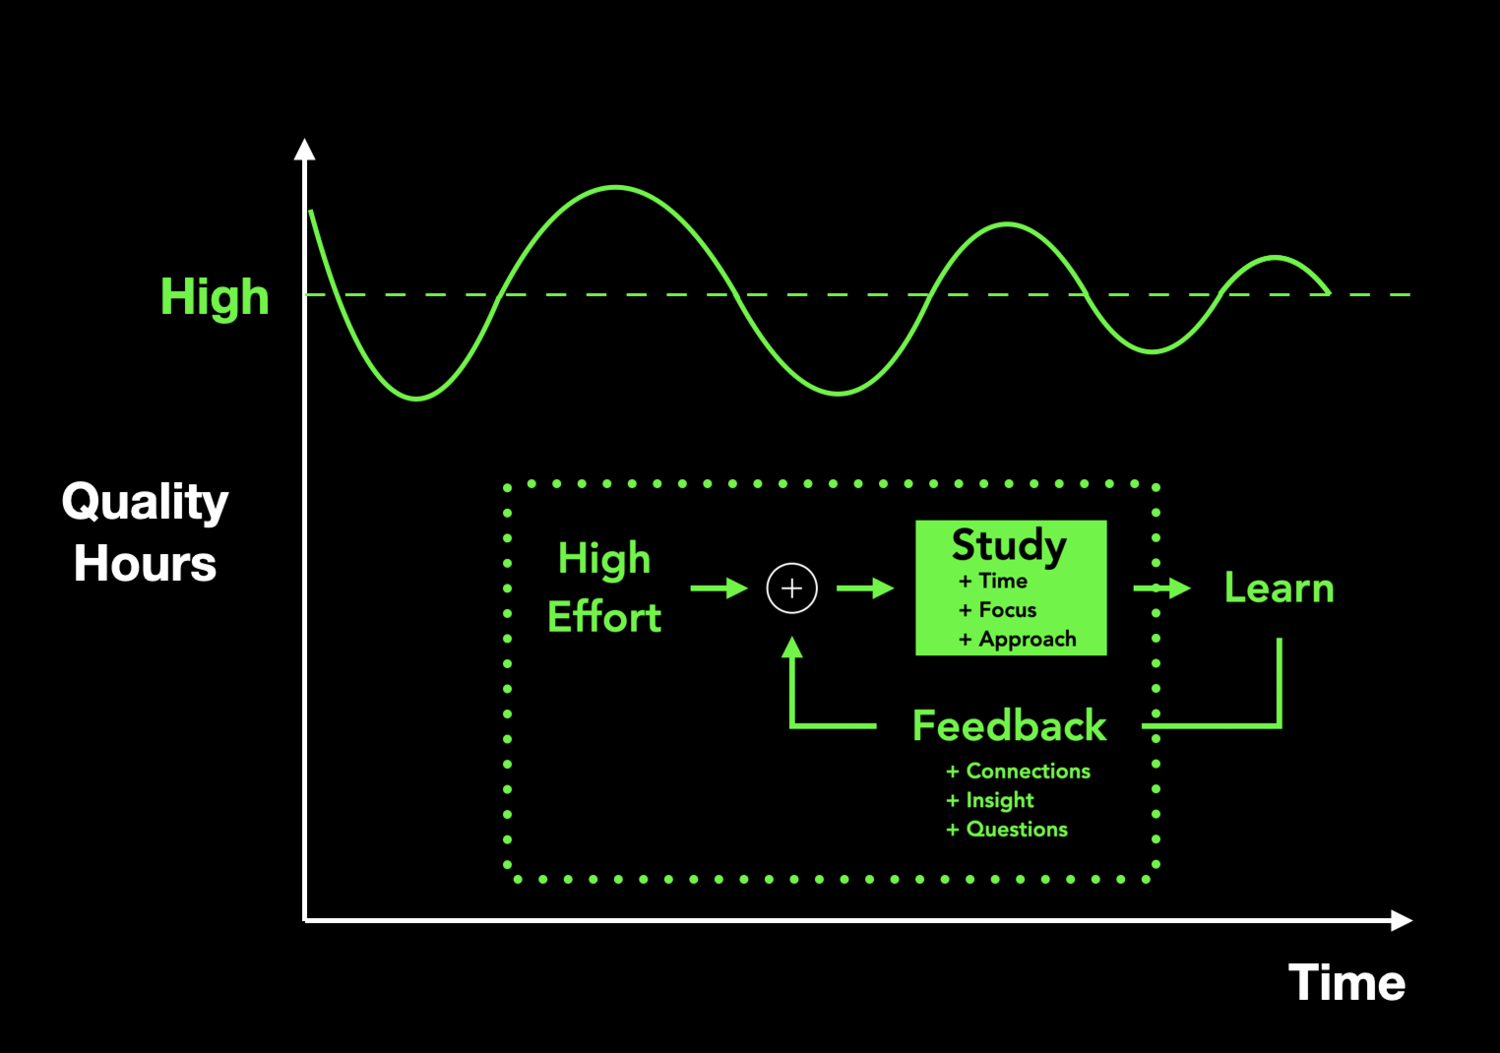 How we study accounts for the input, process, and feedback portions of the feedback loop (boxed). This image assumes consistent high quality study.